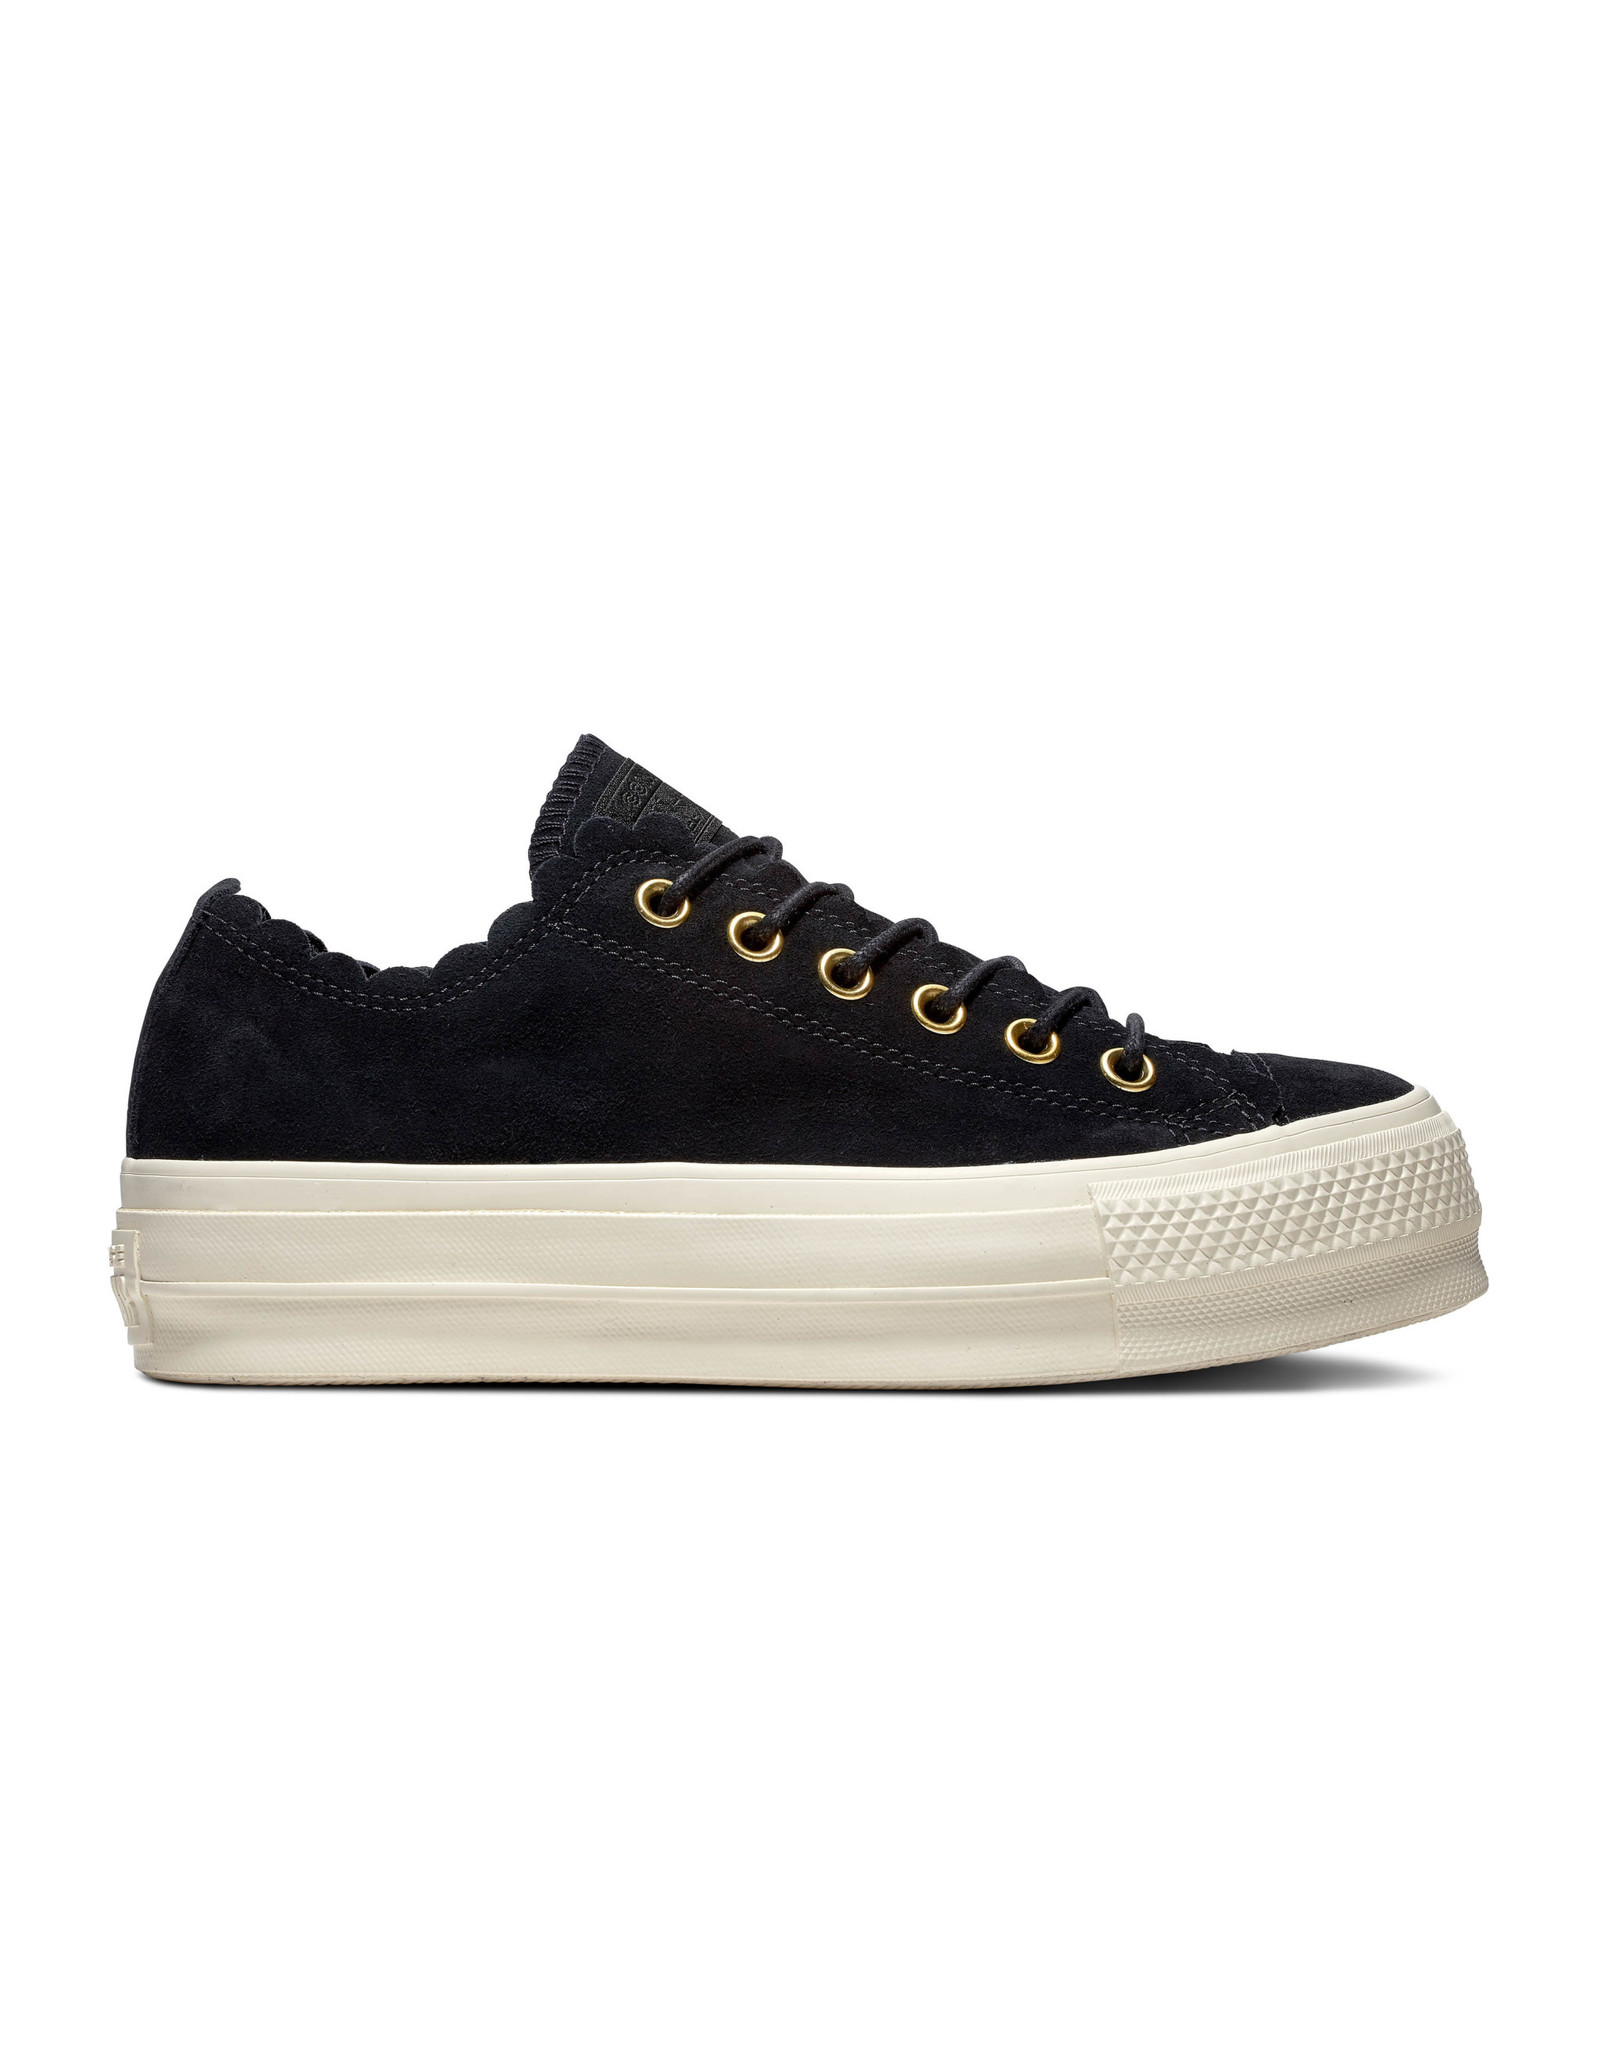 CONVERSE CHUCK TAYLOR ALL STAR LIFT OX CUIR BLACK/GOLD/EGRET C13LBE-563499C